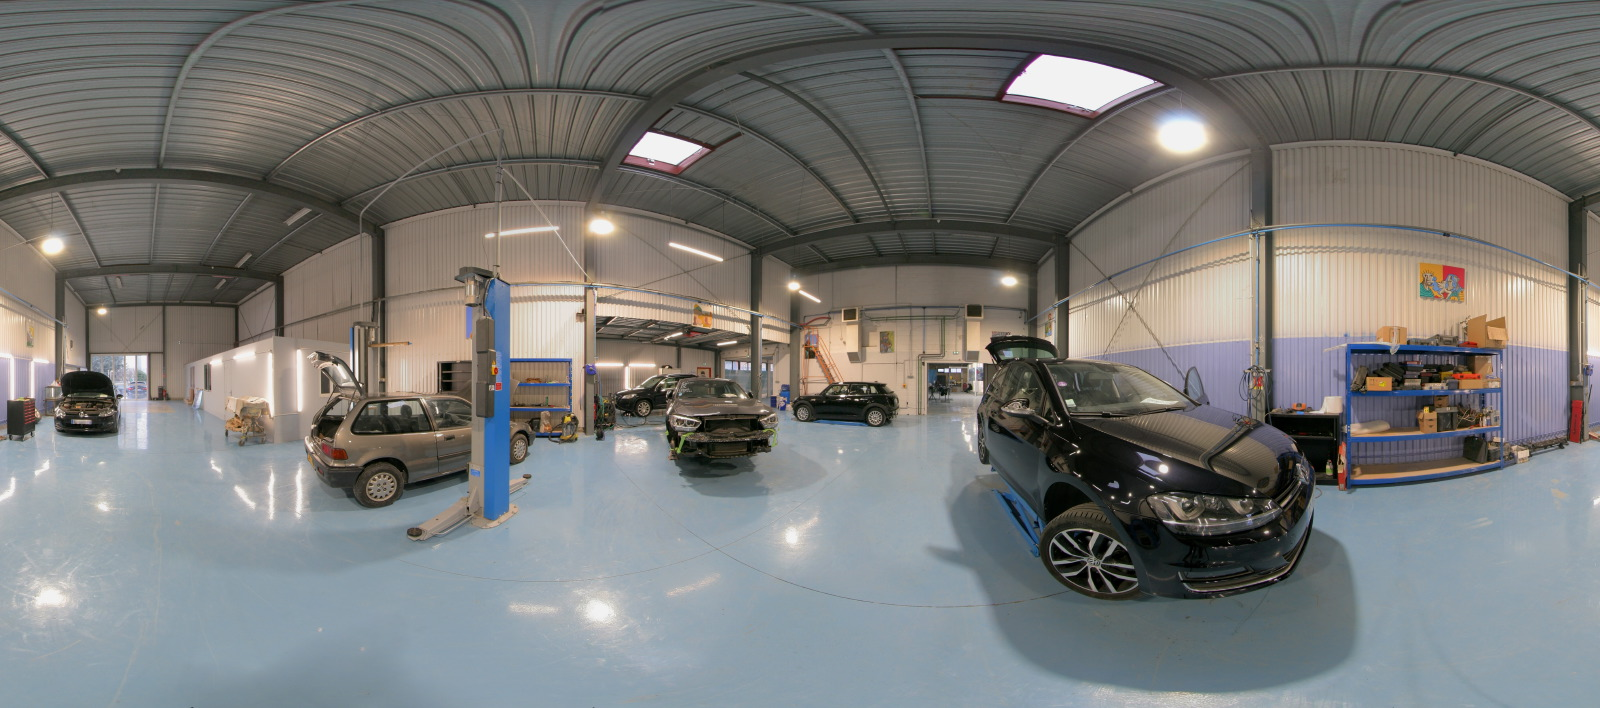 SV Cars garage automobile Le Plessis-Robinson. Visite virtuelle Google 805 Productions Paris